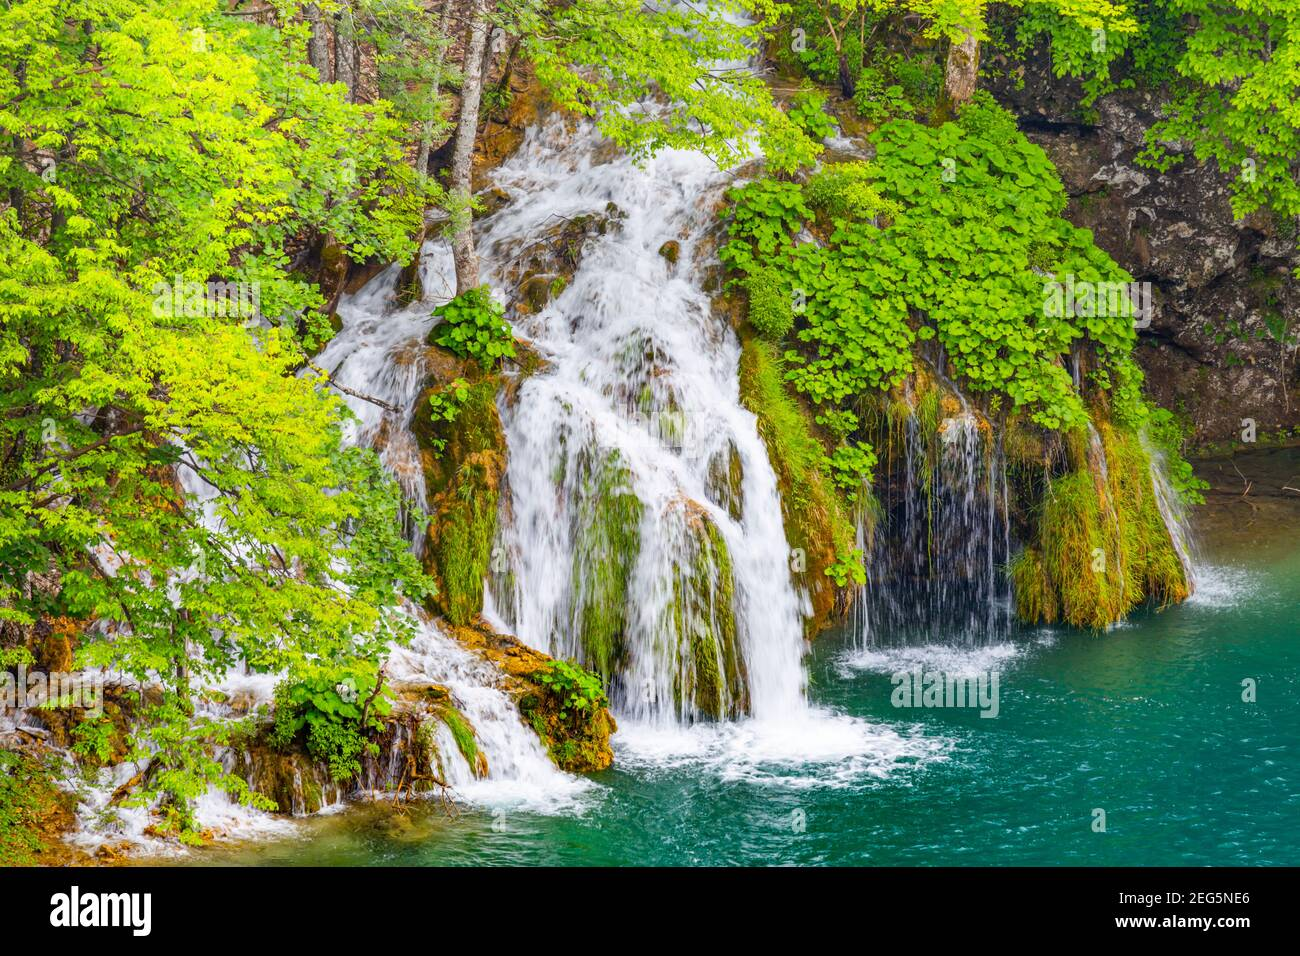 Spring season Green forest in Plitvice lakes Croatia Europe waterflow water flowing flow Stock Photo